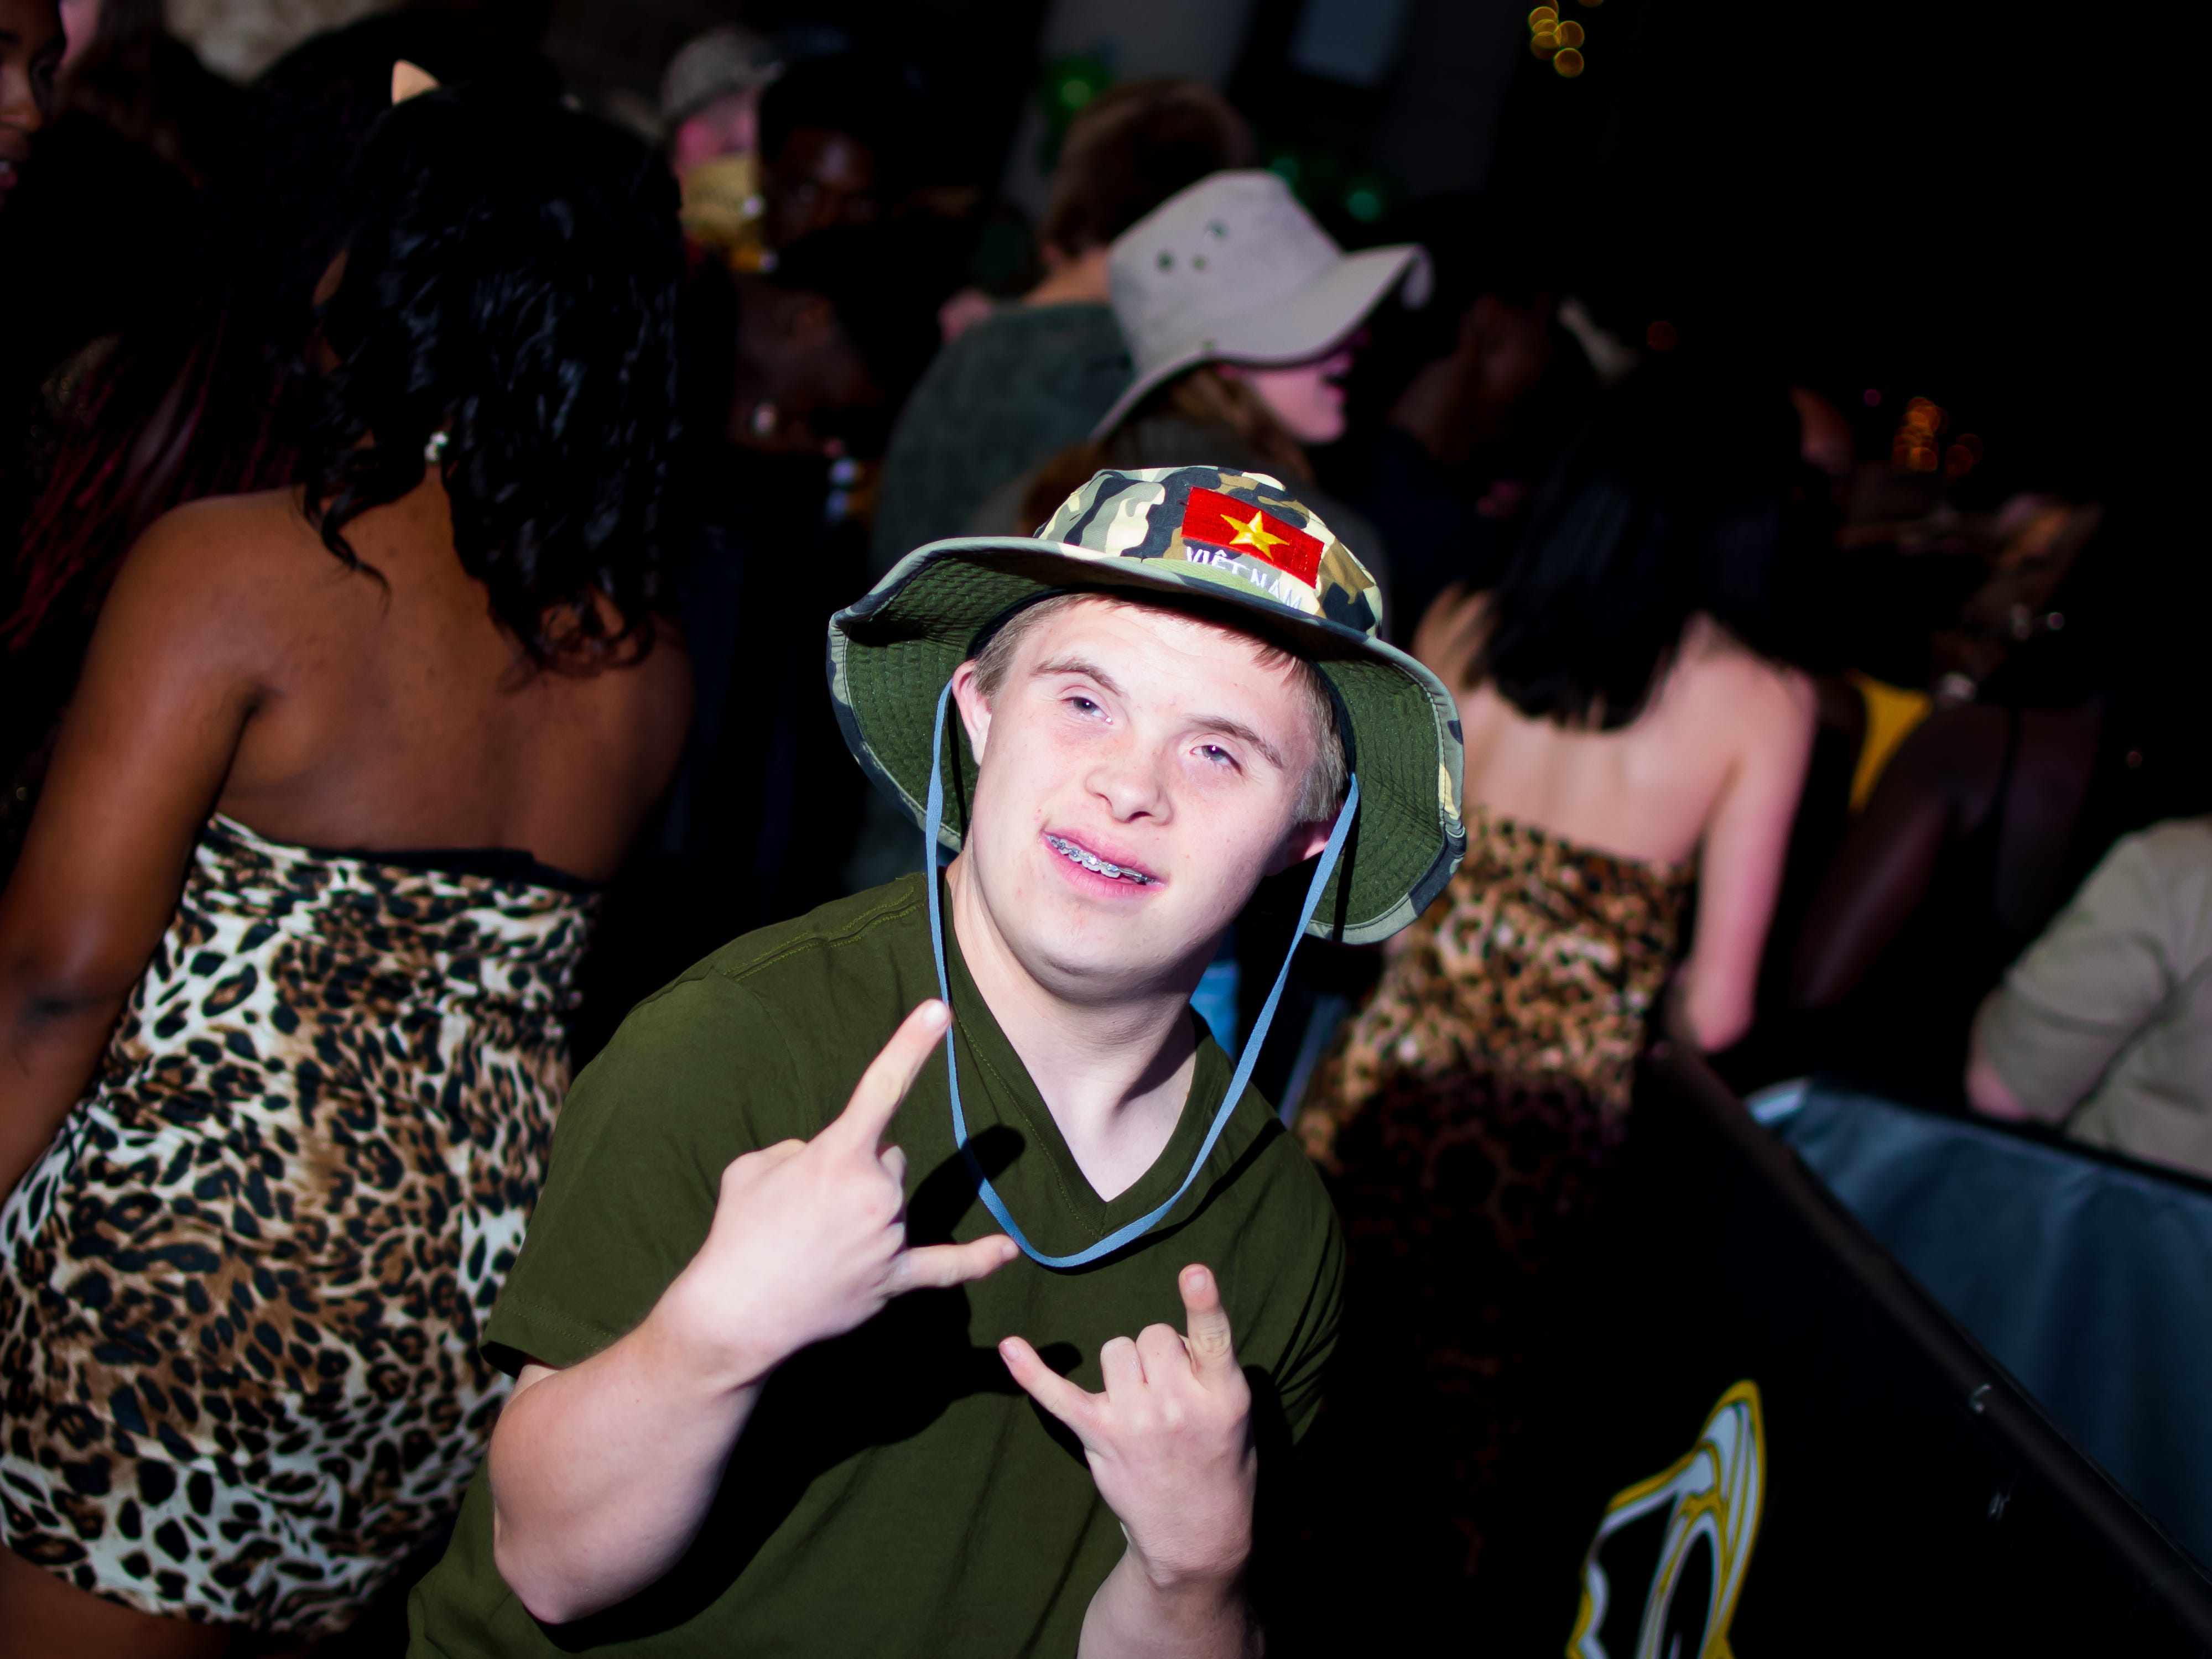 Tyler Kaut, 19, of Southeast Polk dresses up for Southeast Polk High's homecoming dance on Saturday, September 22, 2018 in Southeast Polk High.